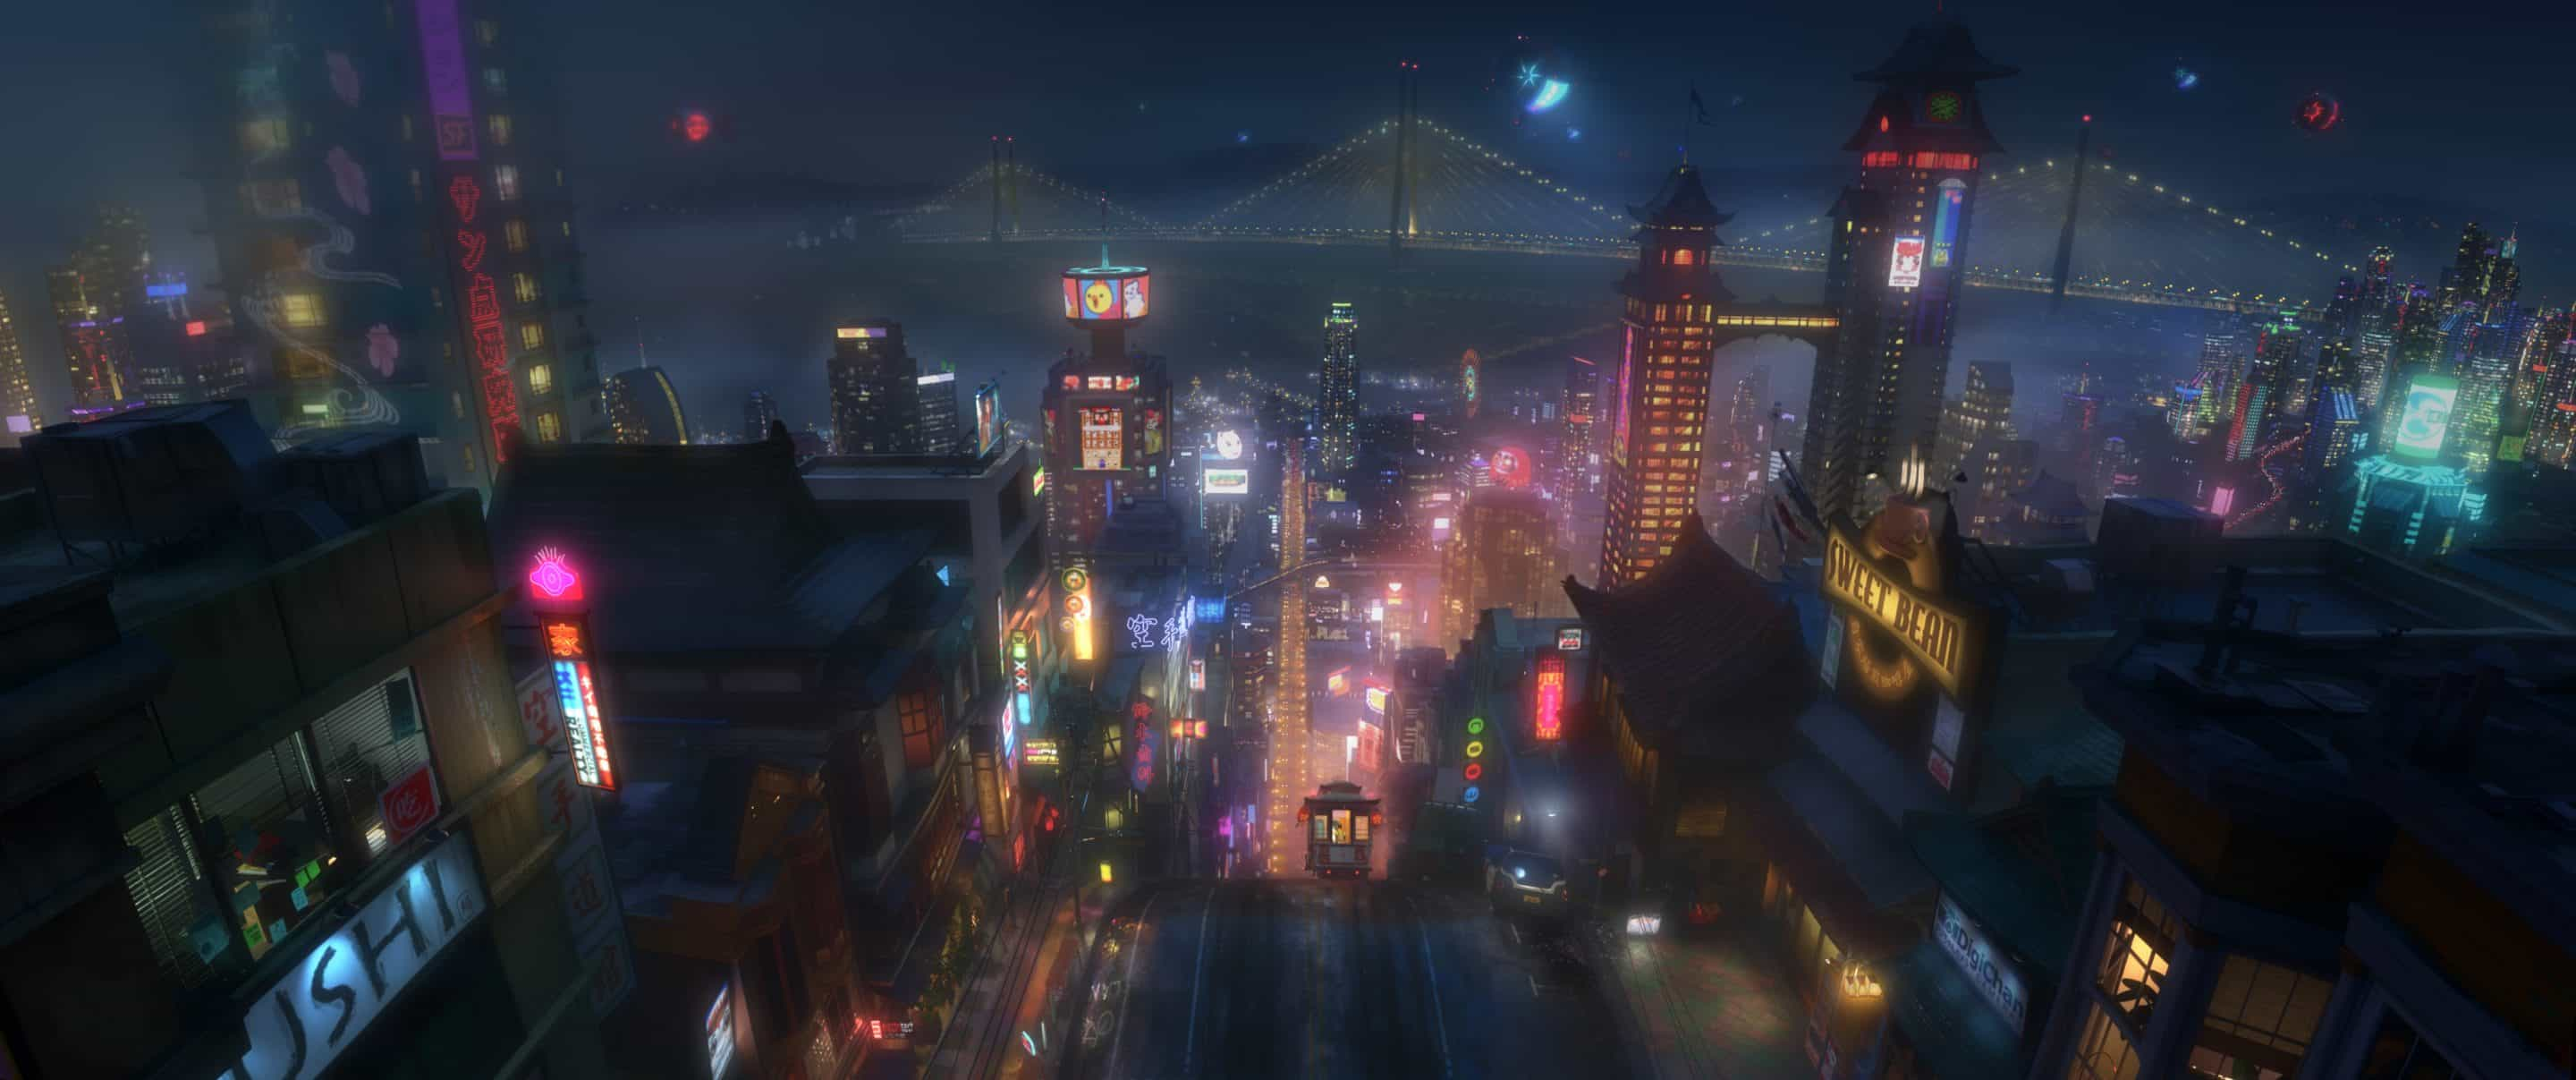 "A Closer Look at Walt Disney Animation's Newest Feature ""Big Hero 6"""